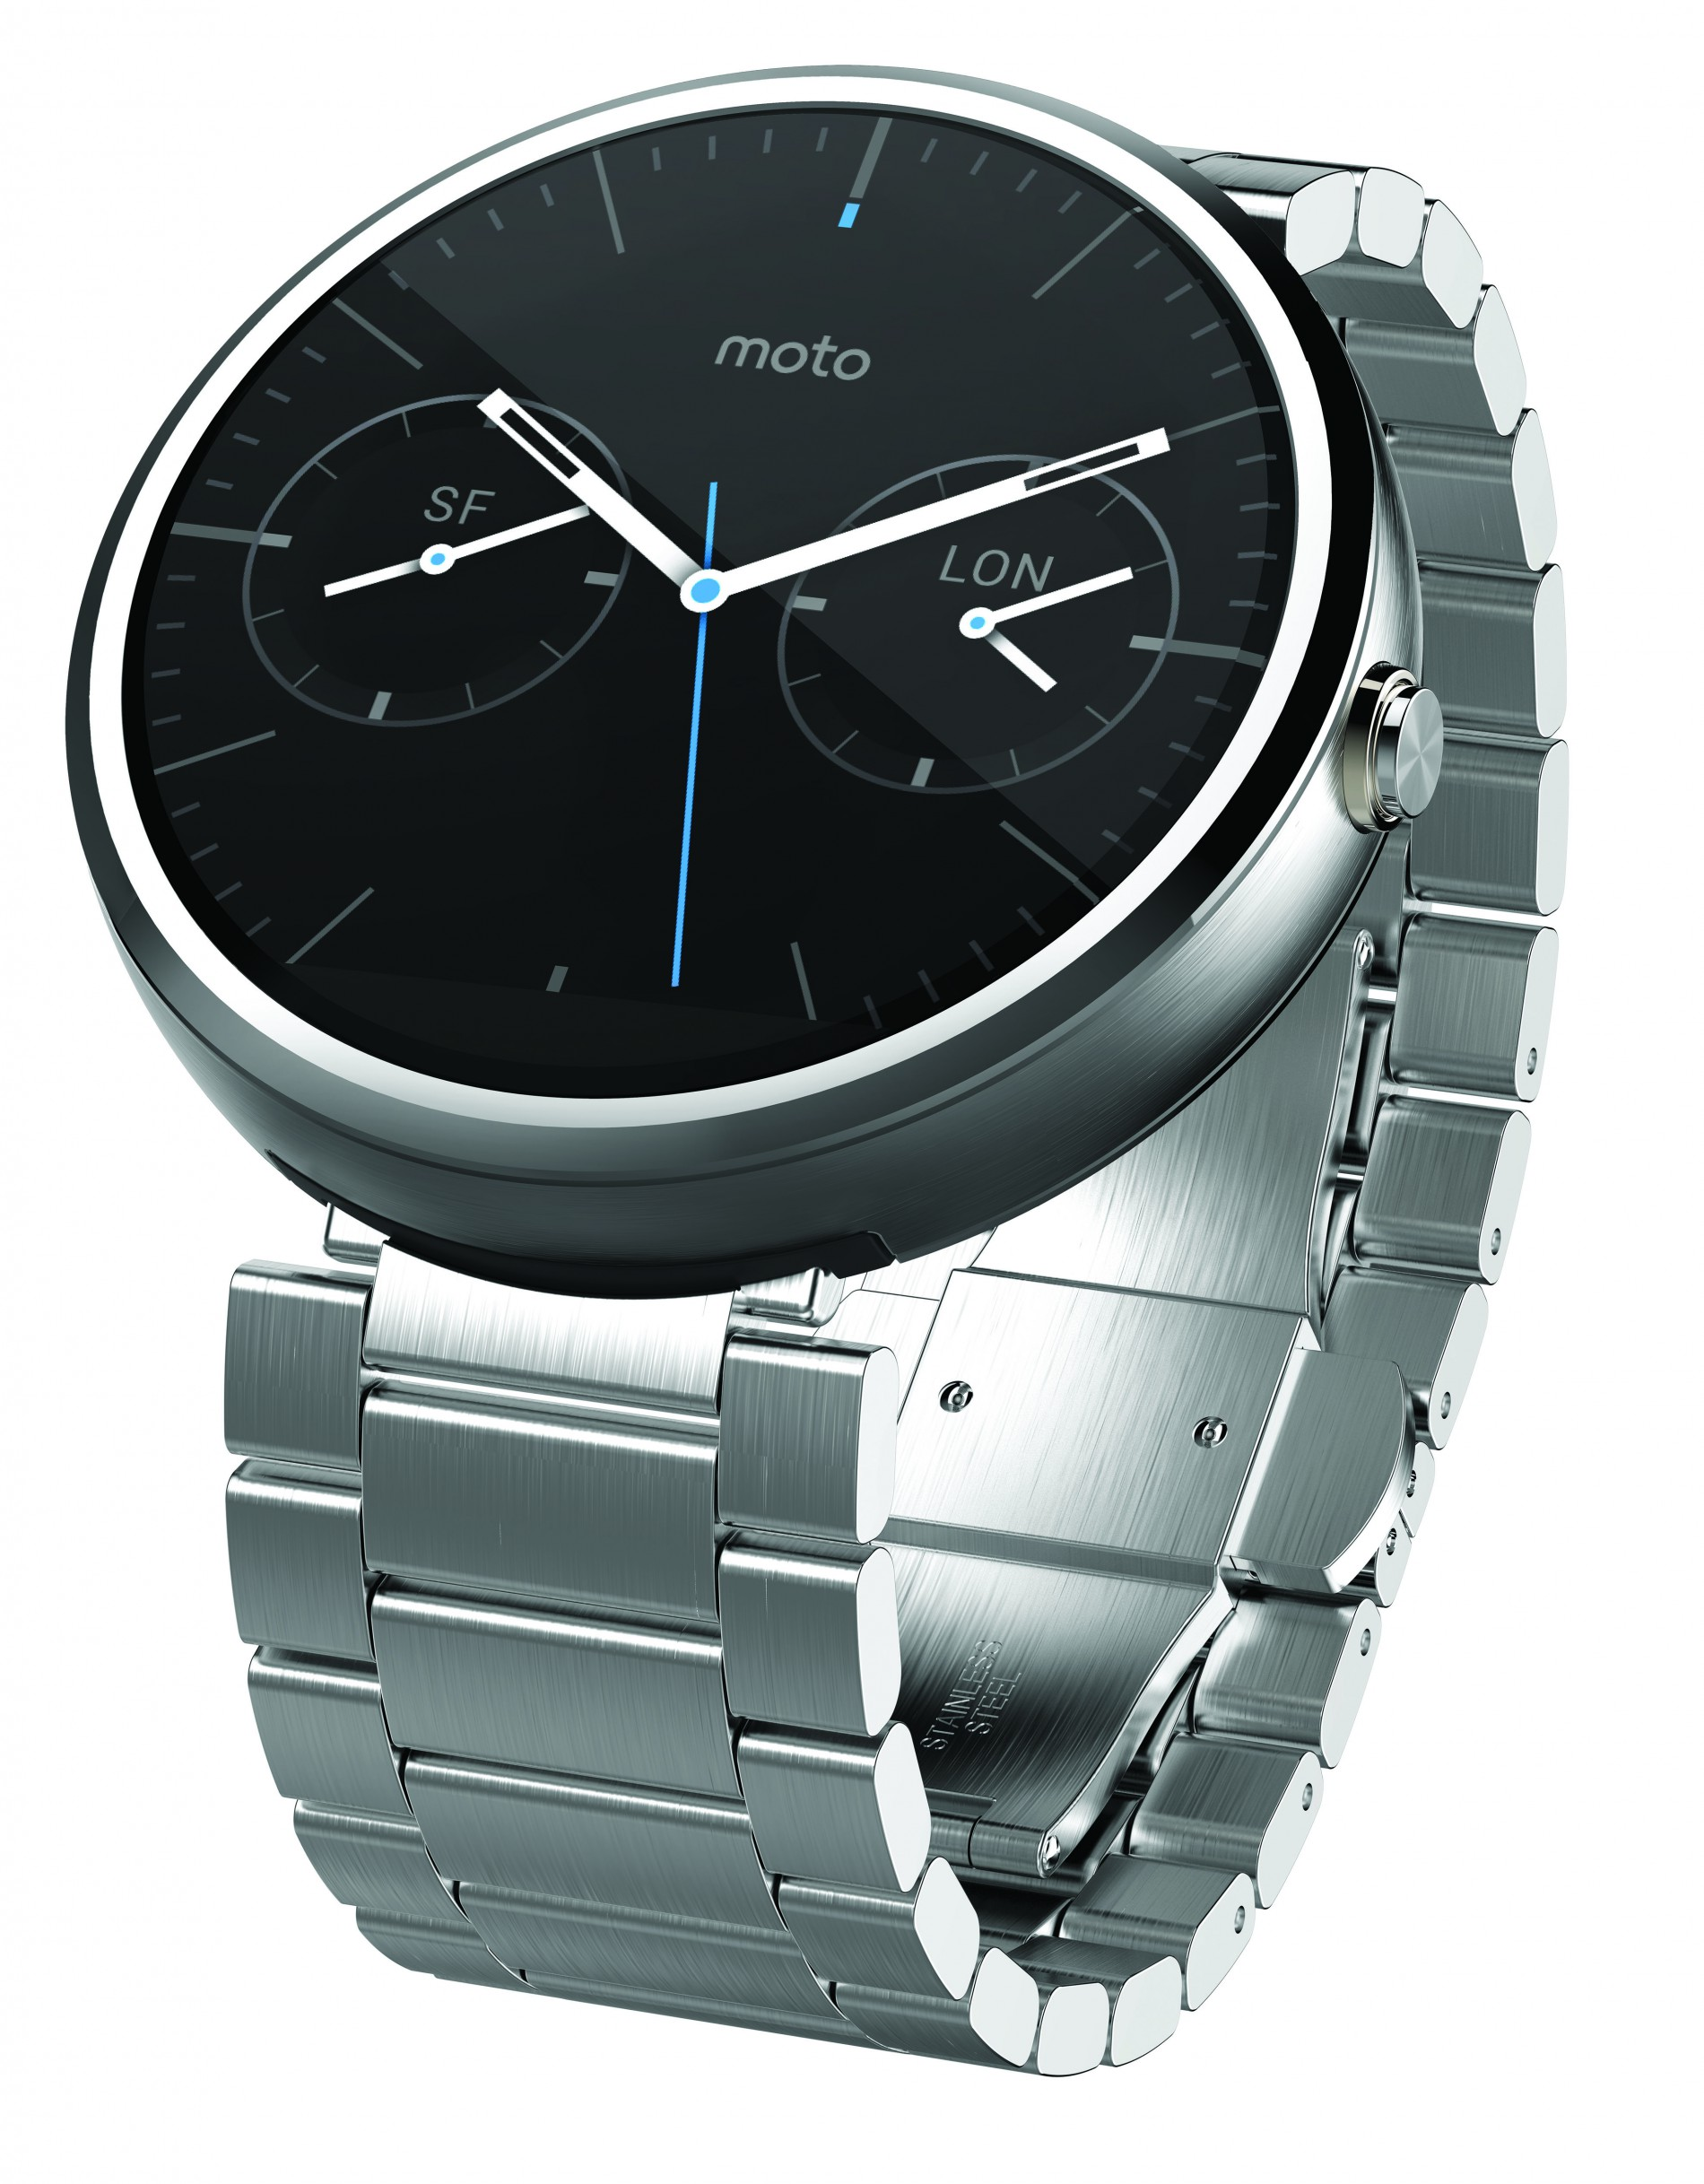 Motorolas Moto E og Moto 360 hædres på Mobile World Congress